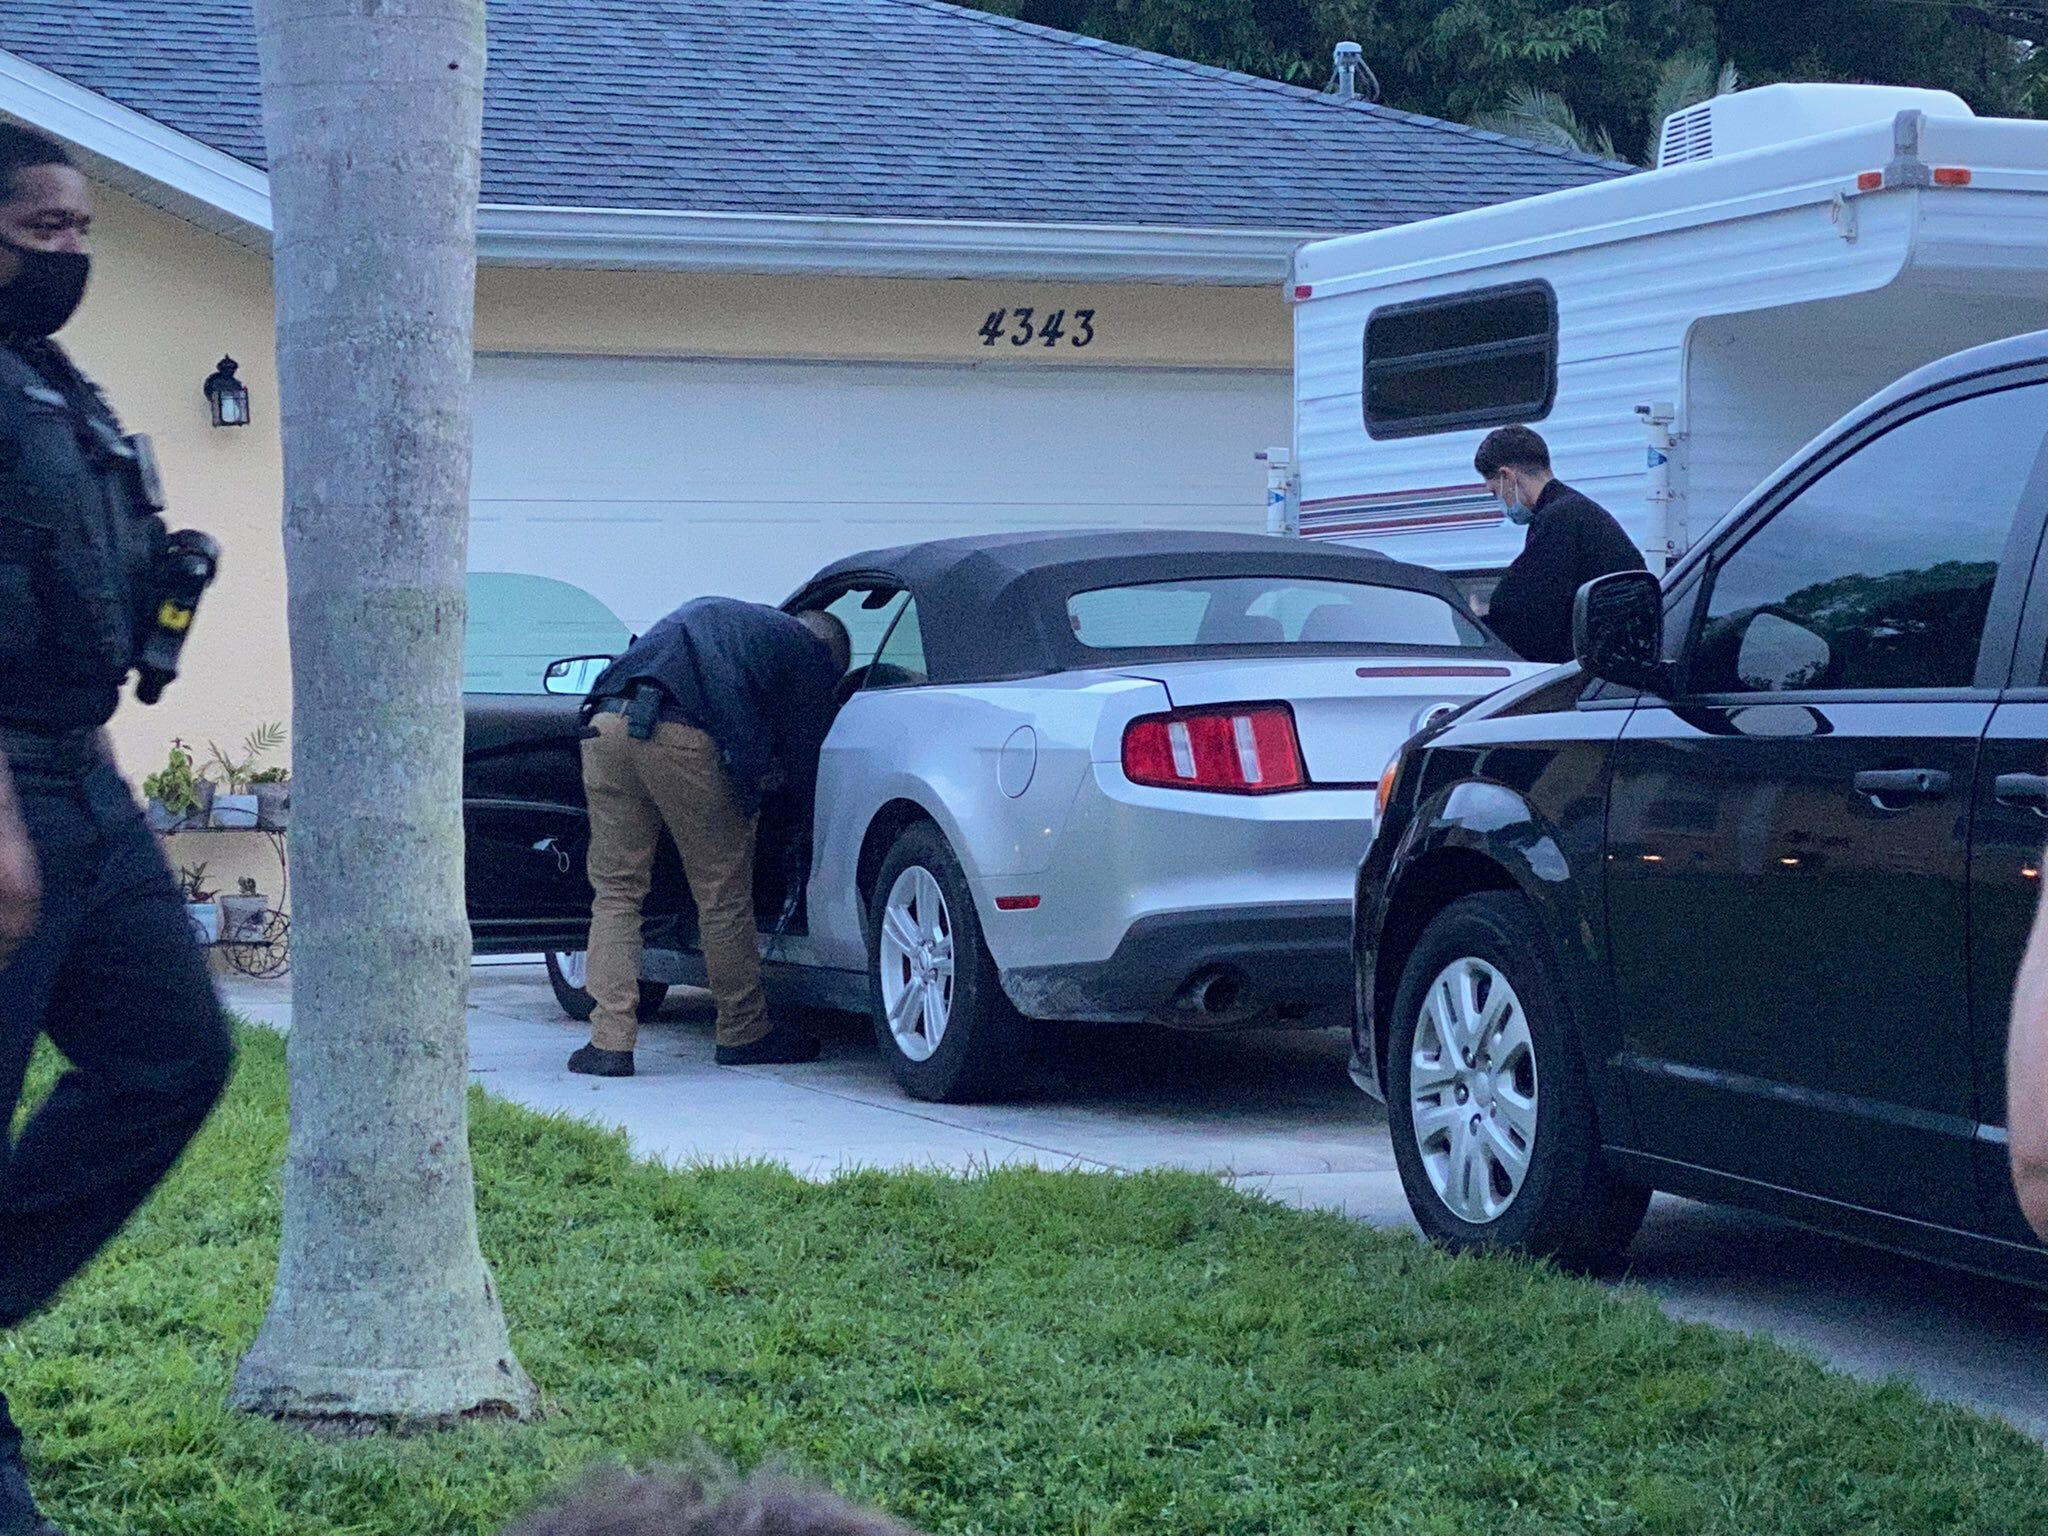 Gabby Petito updates: Authorities, protestors gather at Gabby Petito's fiancé's home, Brian Laundrie